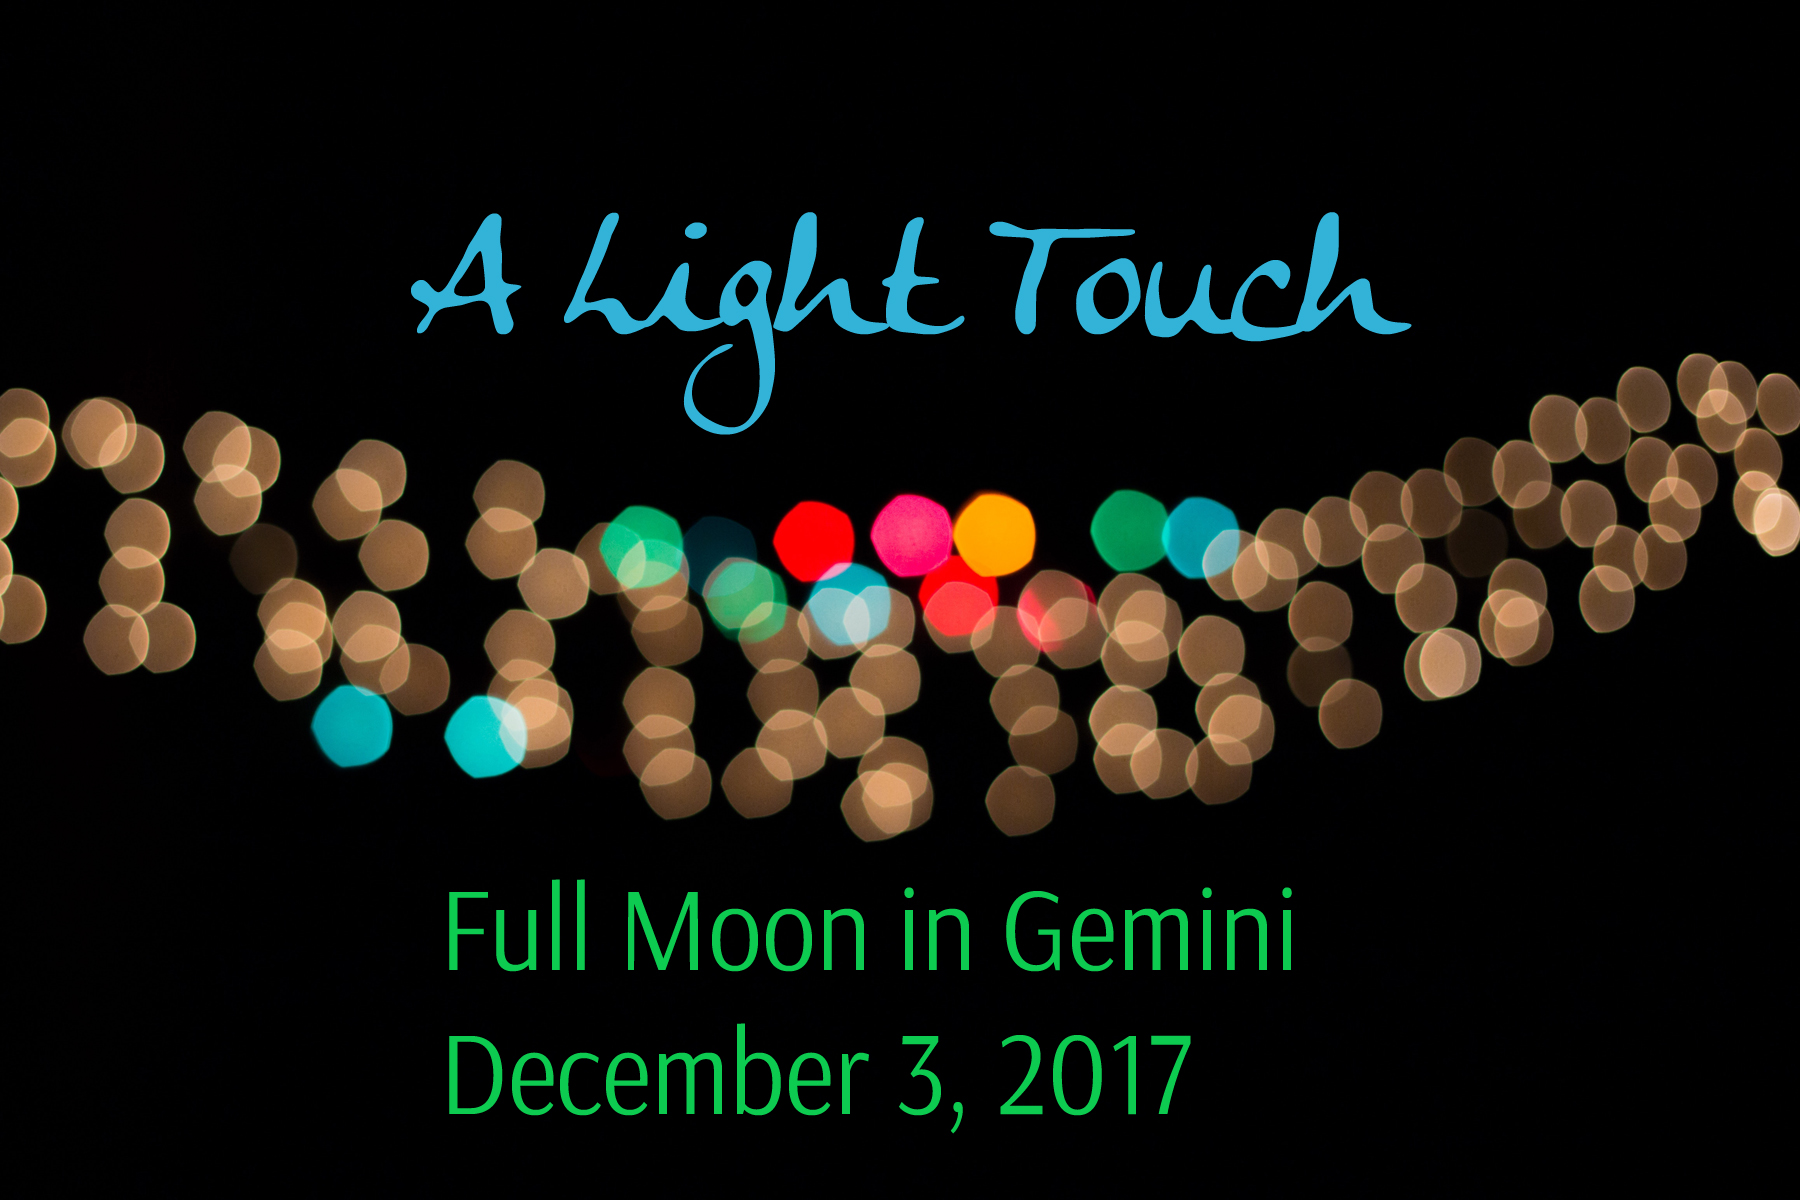 Full Moon in Gemini: A Light Touch